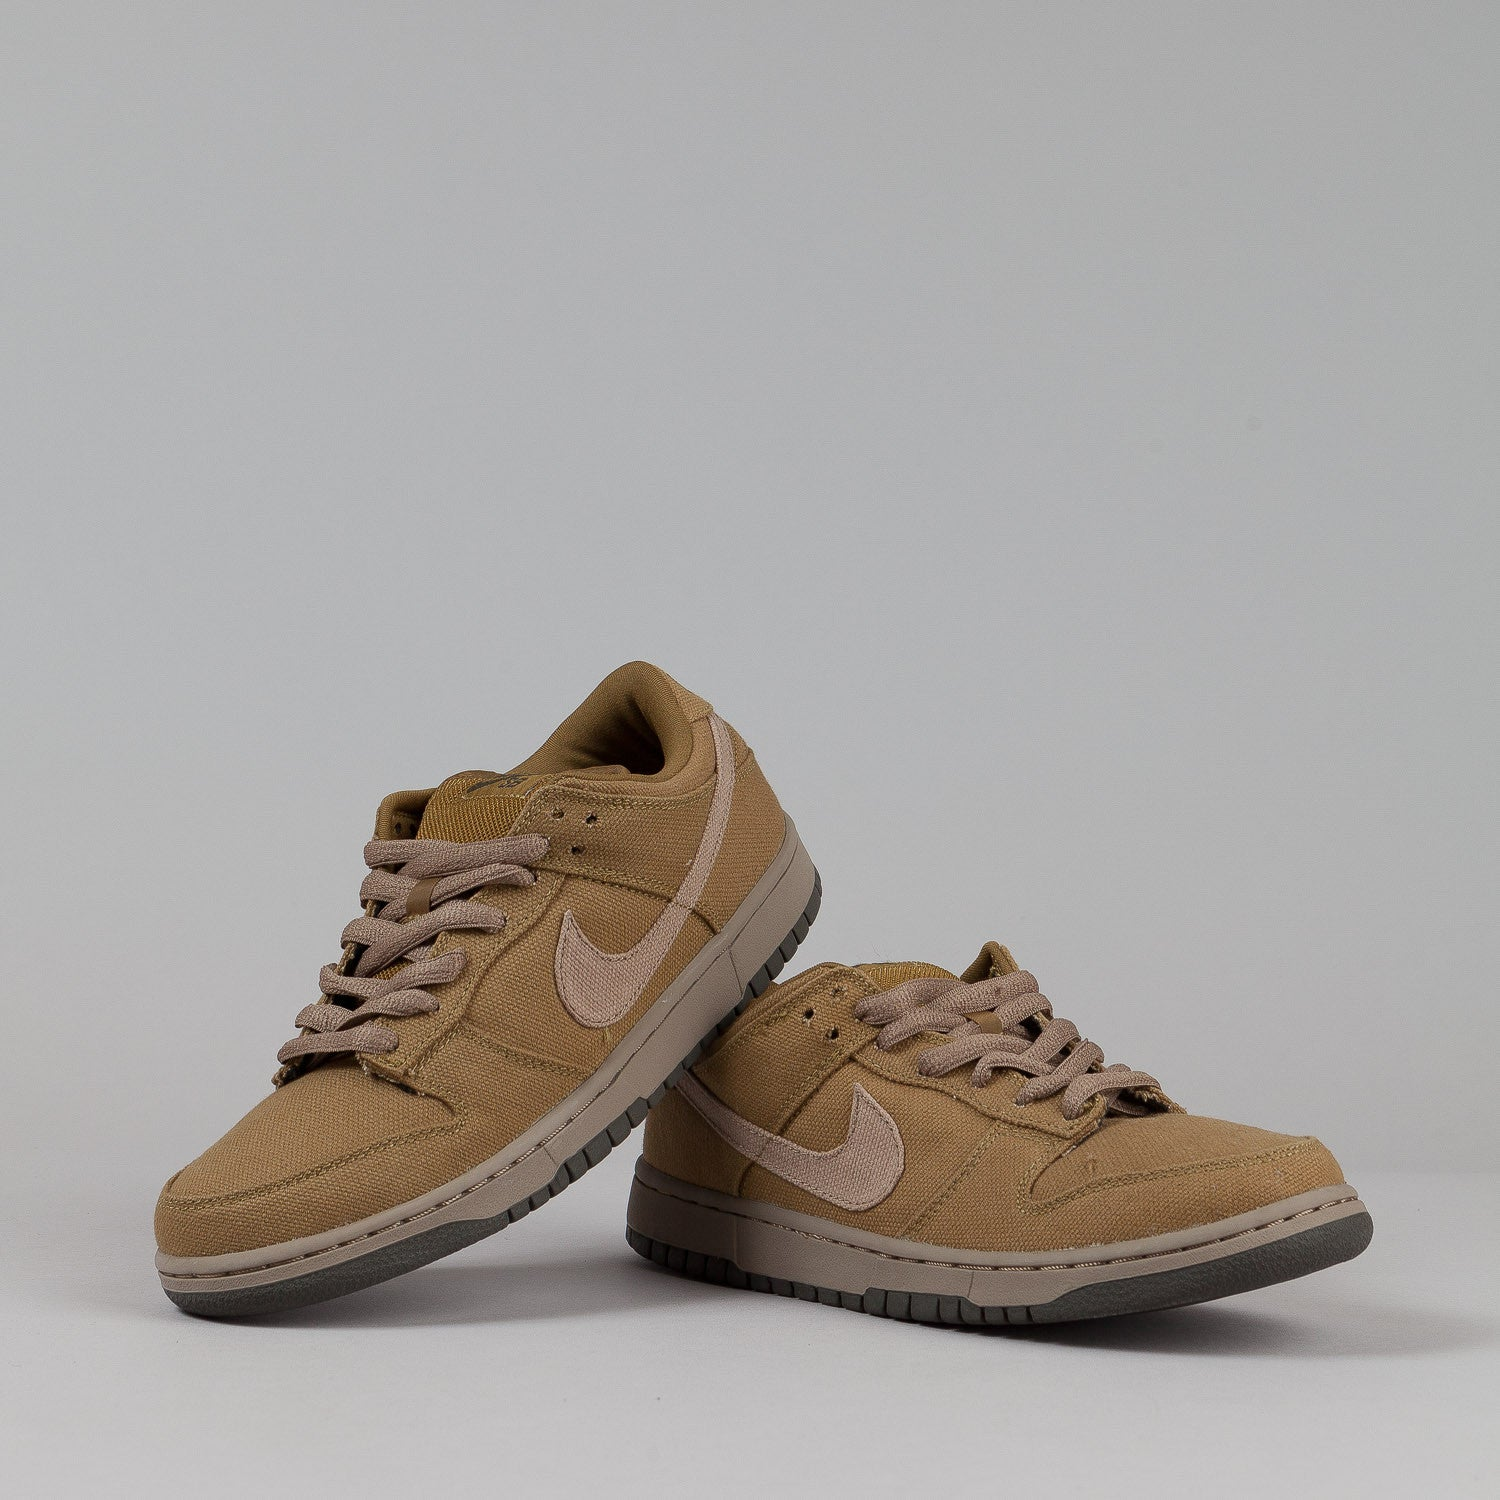 Nike SB Dunk Low Pro Shoes - Spanish Moss / Sandalwood